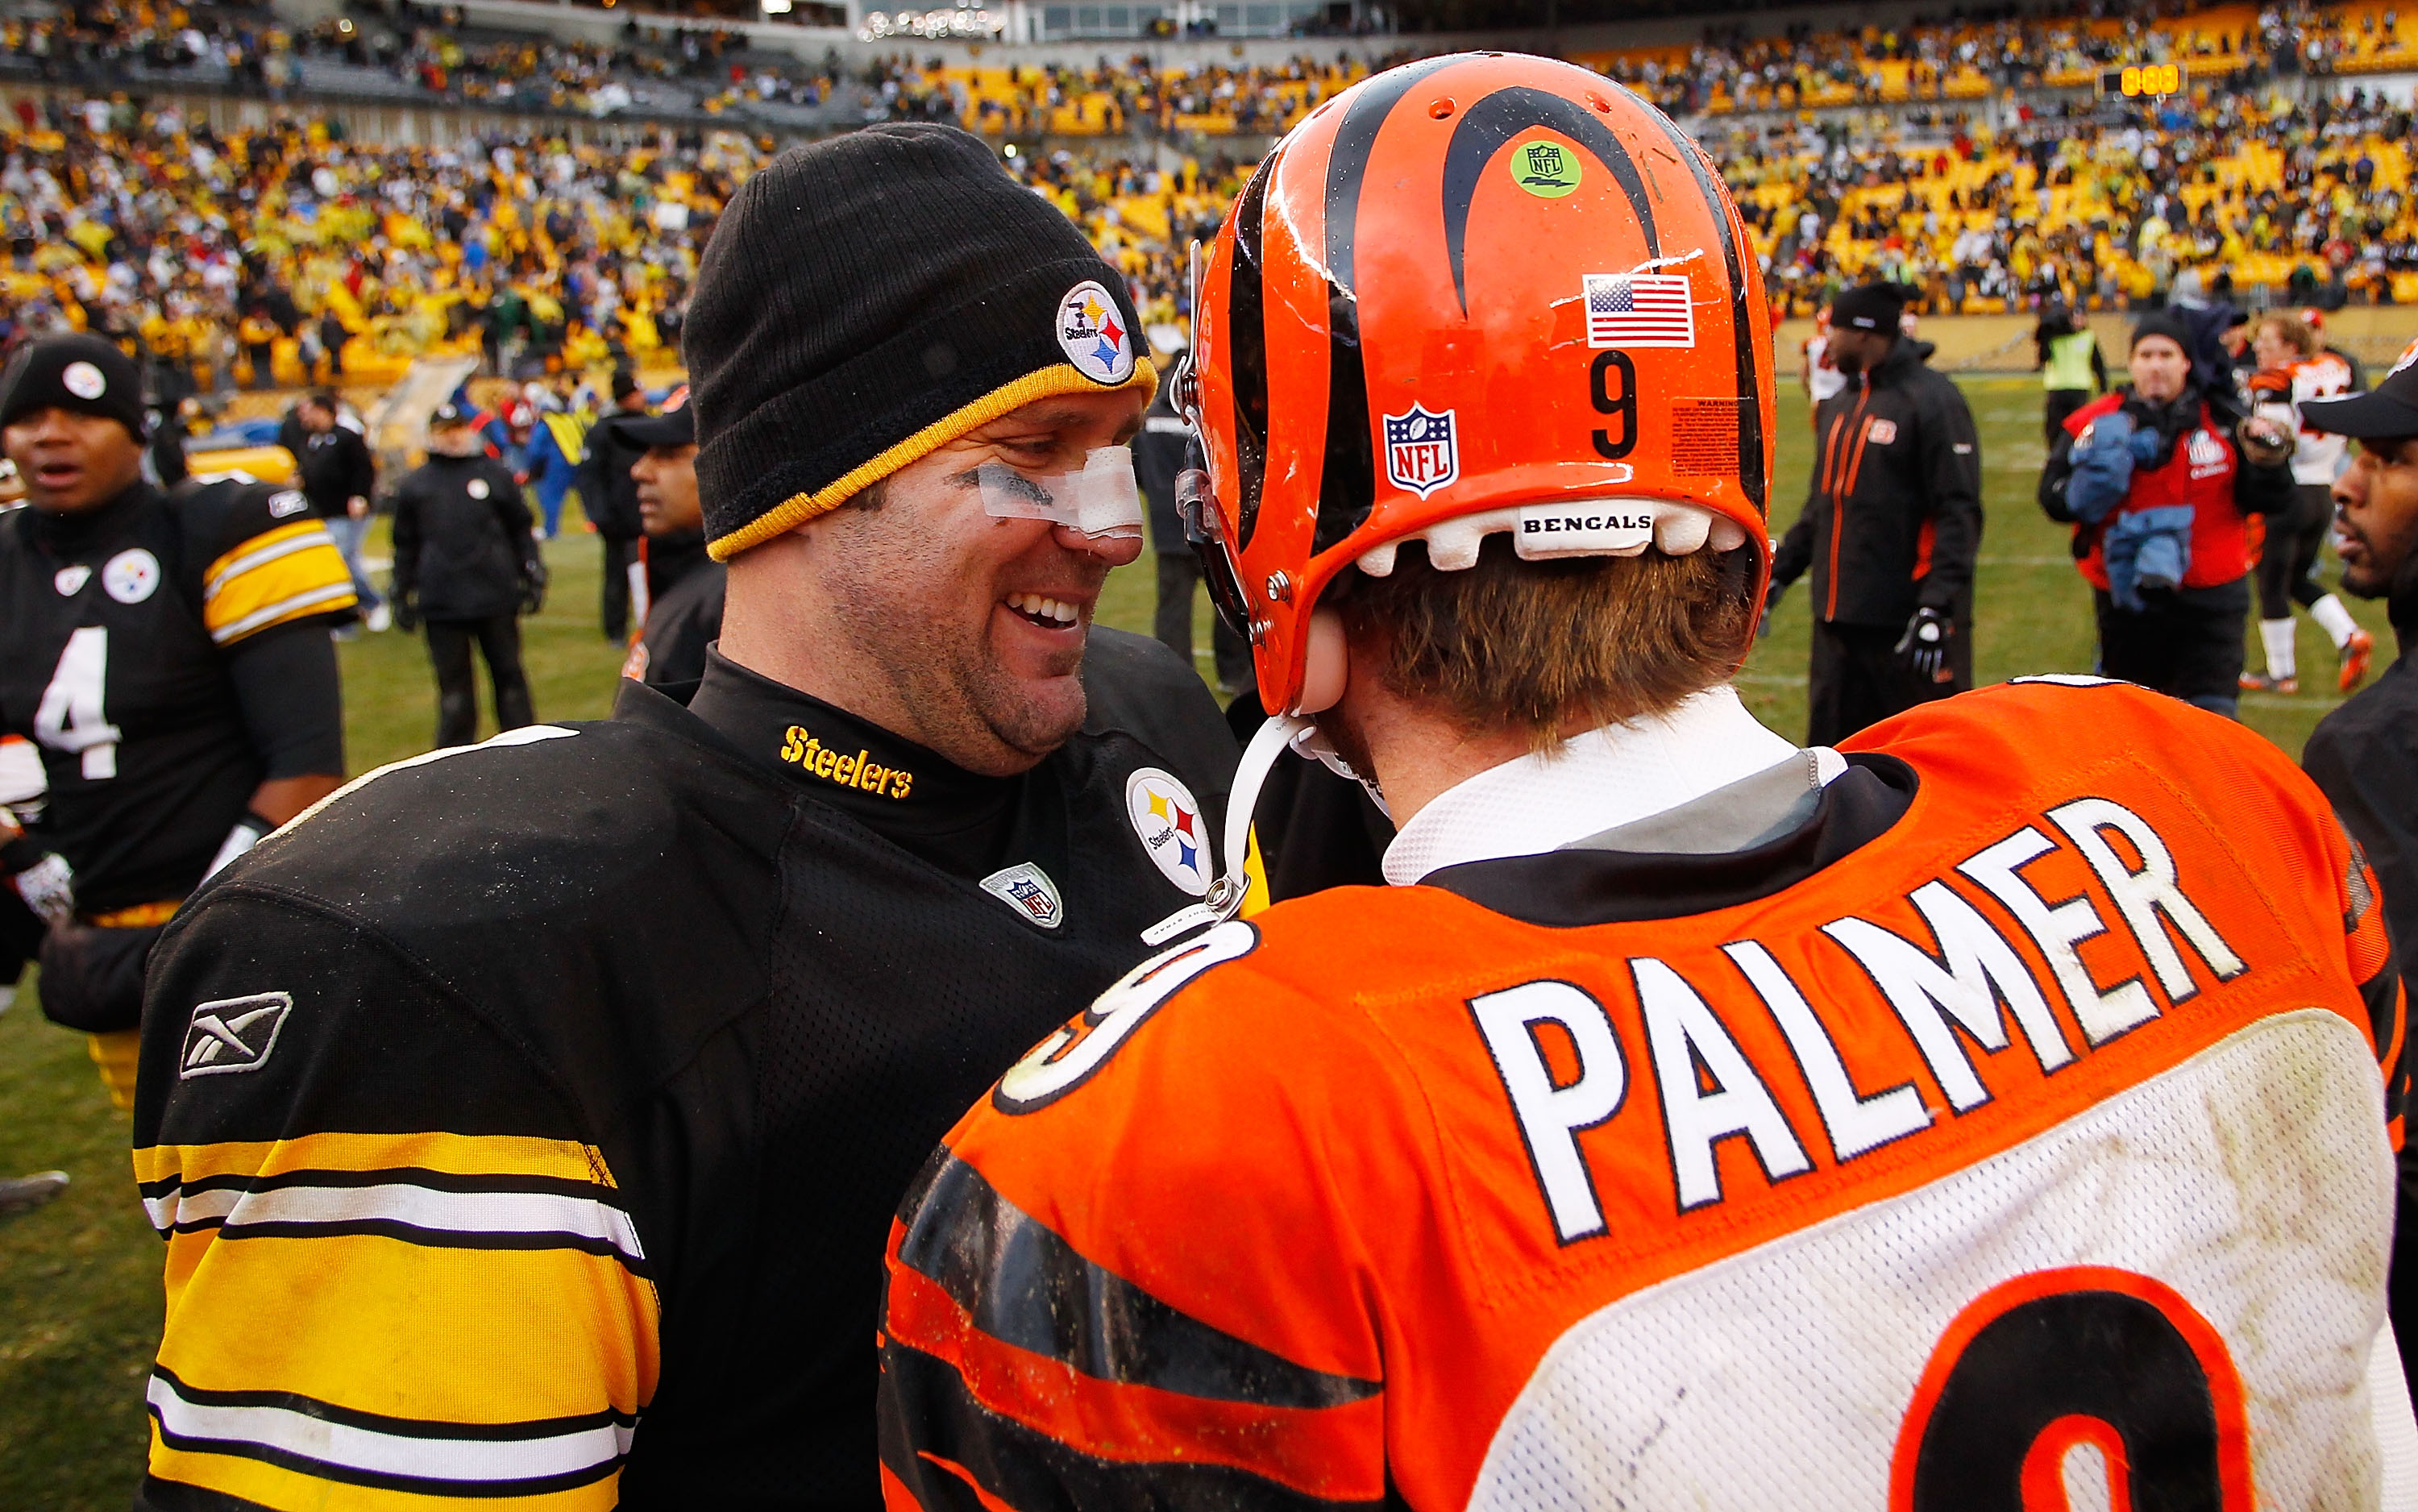 PITTSBURGH - DECEMBER 12:  Ben Roethlisberger #7 of the Pittsburgh Steelers laughs with Carson Palmer #9 of the Cincinnati Bengals following the game on December 12, 2010 at Heinz Field in Pittsburgh, Pennsylvania.  (Photo by Jared Wickerham/Getty Images)